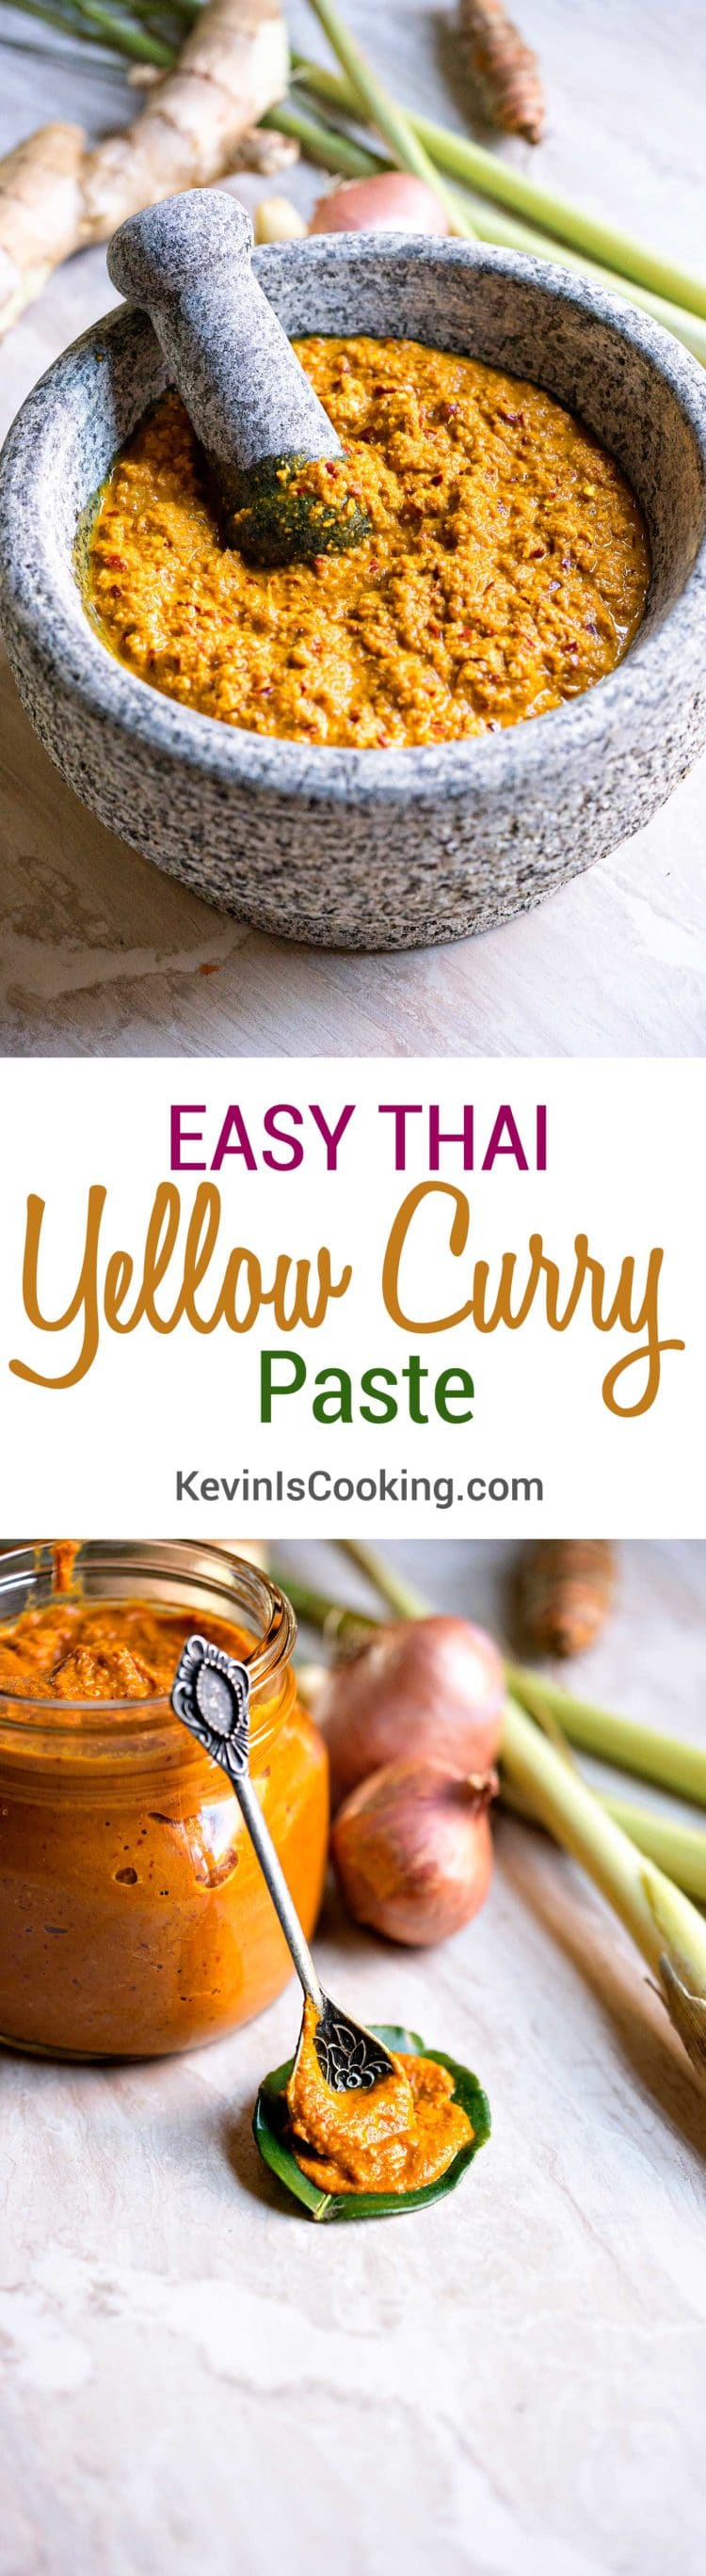 Easy Thai Yellow Curry Paste. www.keviniscooking.com